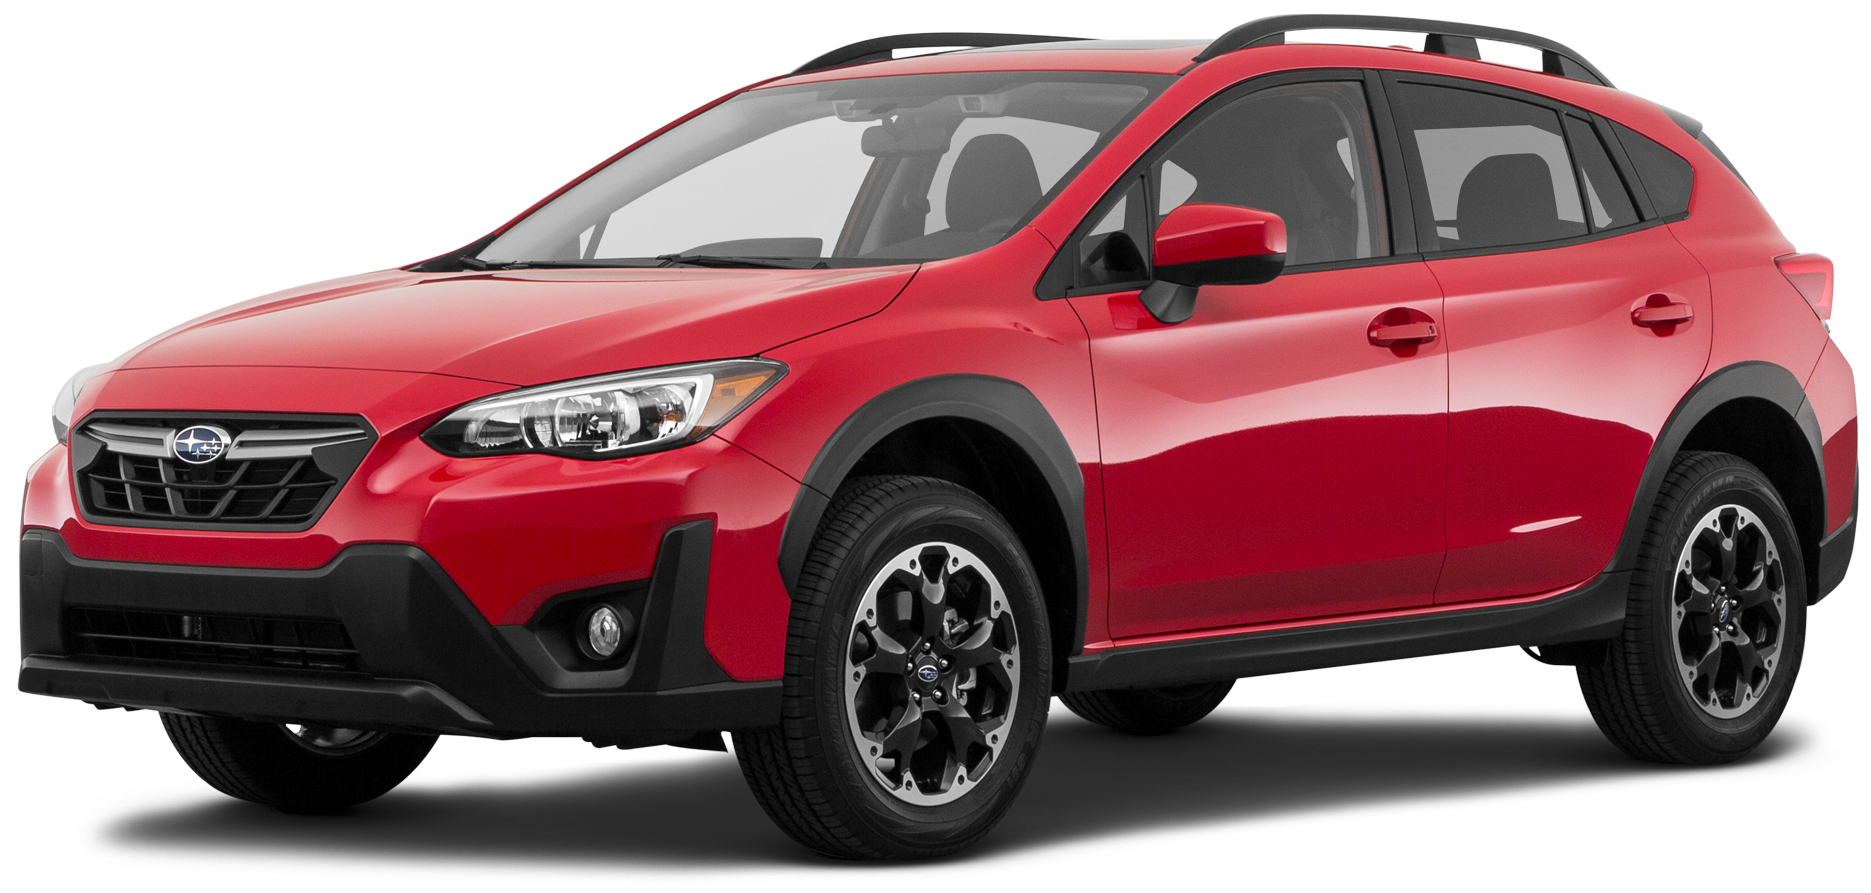 http://images.dealer.com/ddc/vehicles/2021/Subaru/Crosstrek/SUV/trim_Premium_c3fe37/perspective/front-left/2021_76.png